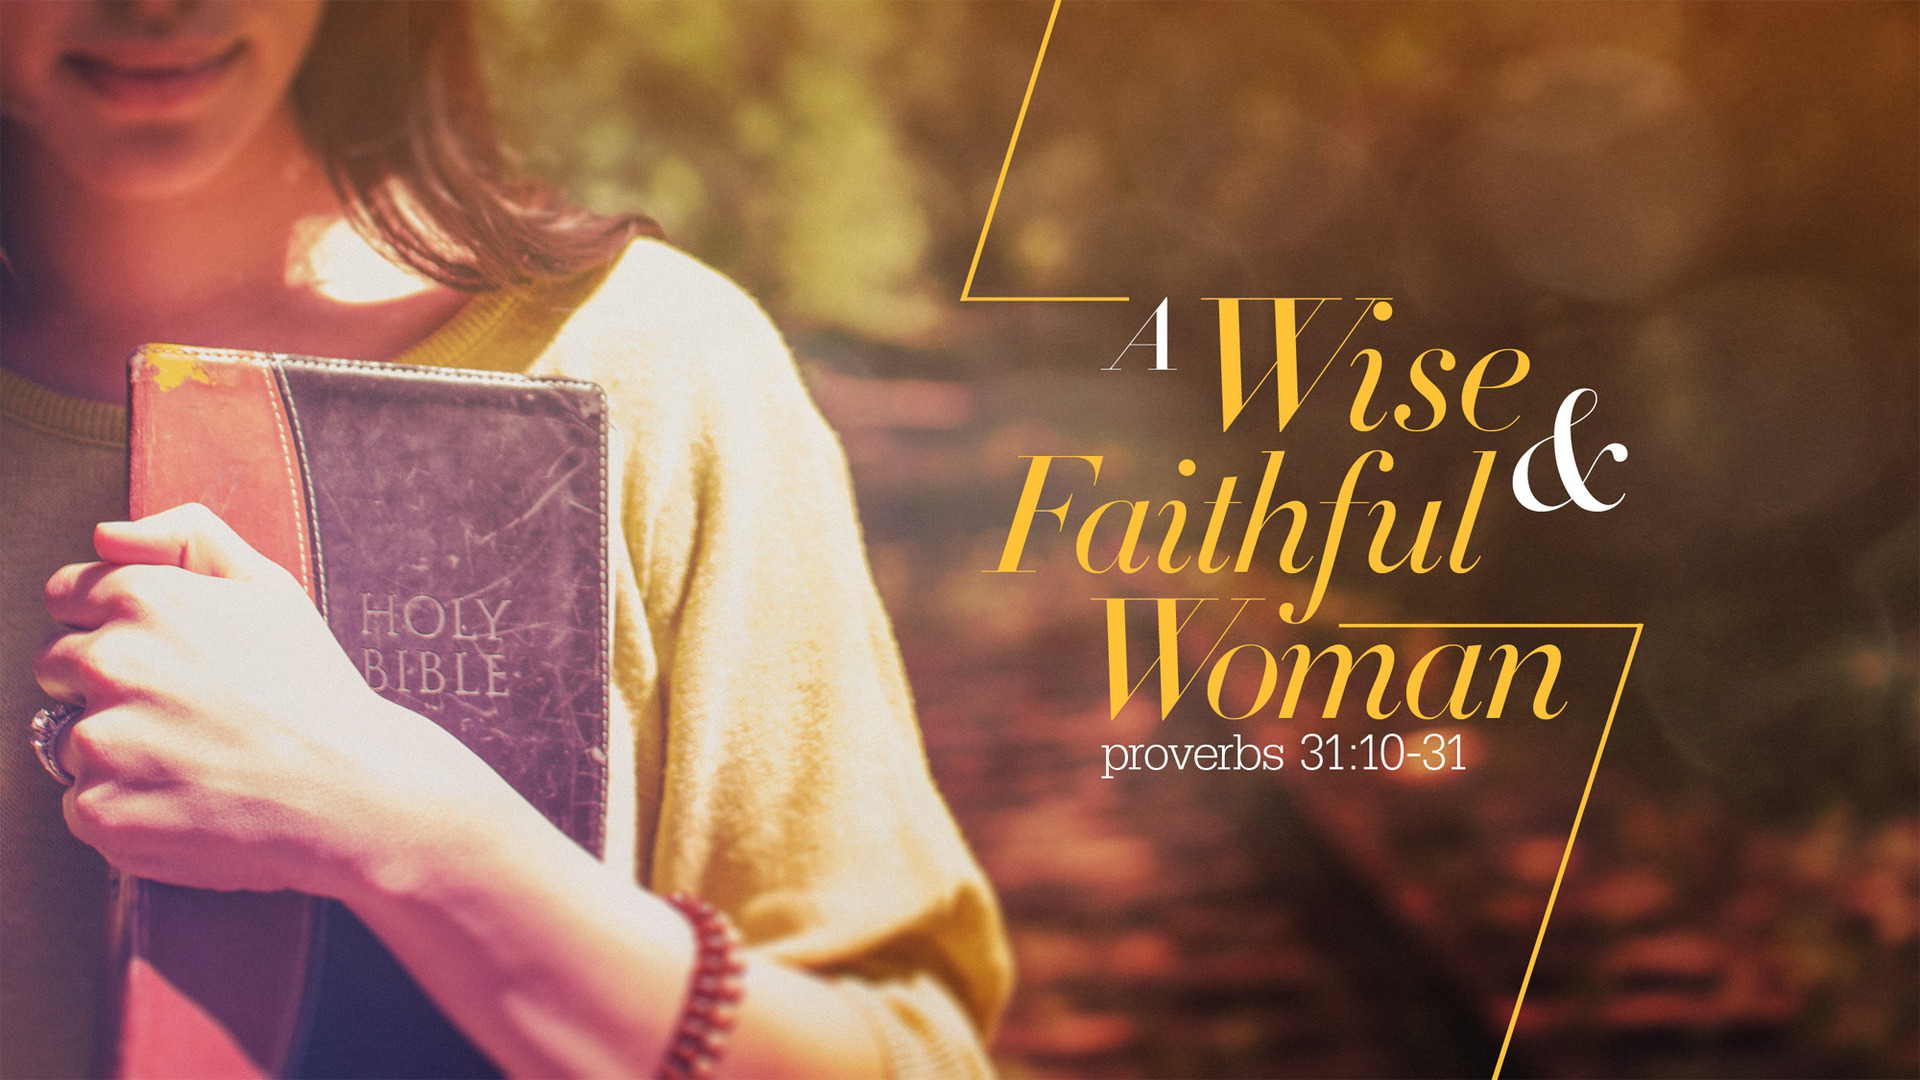 "- Virtuous Women is a powerful ministry composed of women who are looking for an in-depth relationship with God. Our goal is to be like that proverbs thirty one woman ""clothed with strength and dignity; speaking with wisdom and faithful instruction on our tongue."" Touching upon every issue that affects women today, it's a great resource forhealing, fellowship and spiritual for growth."